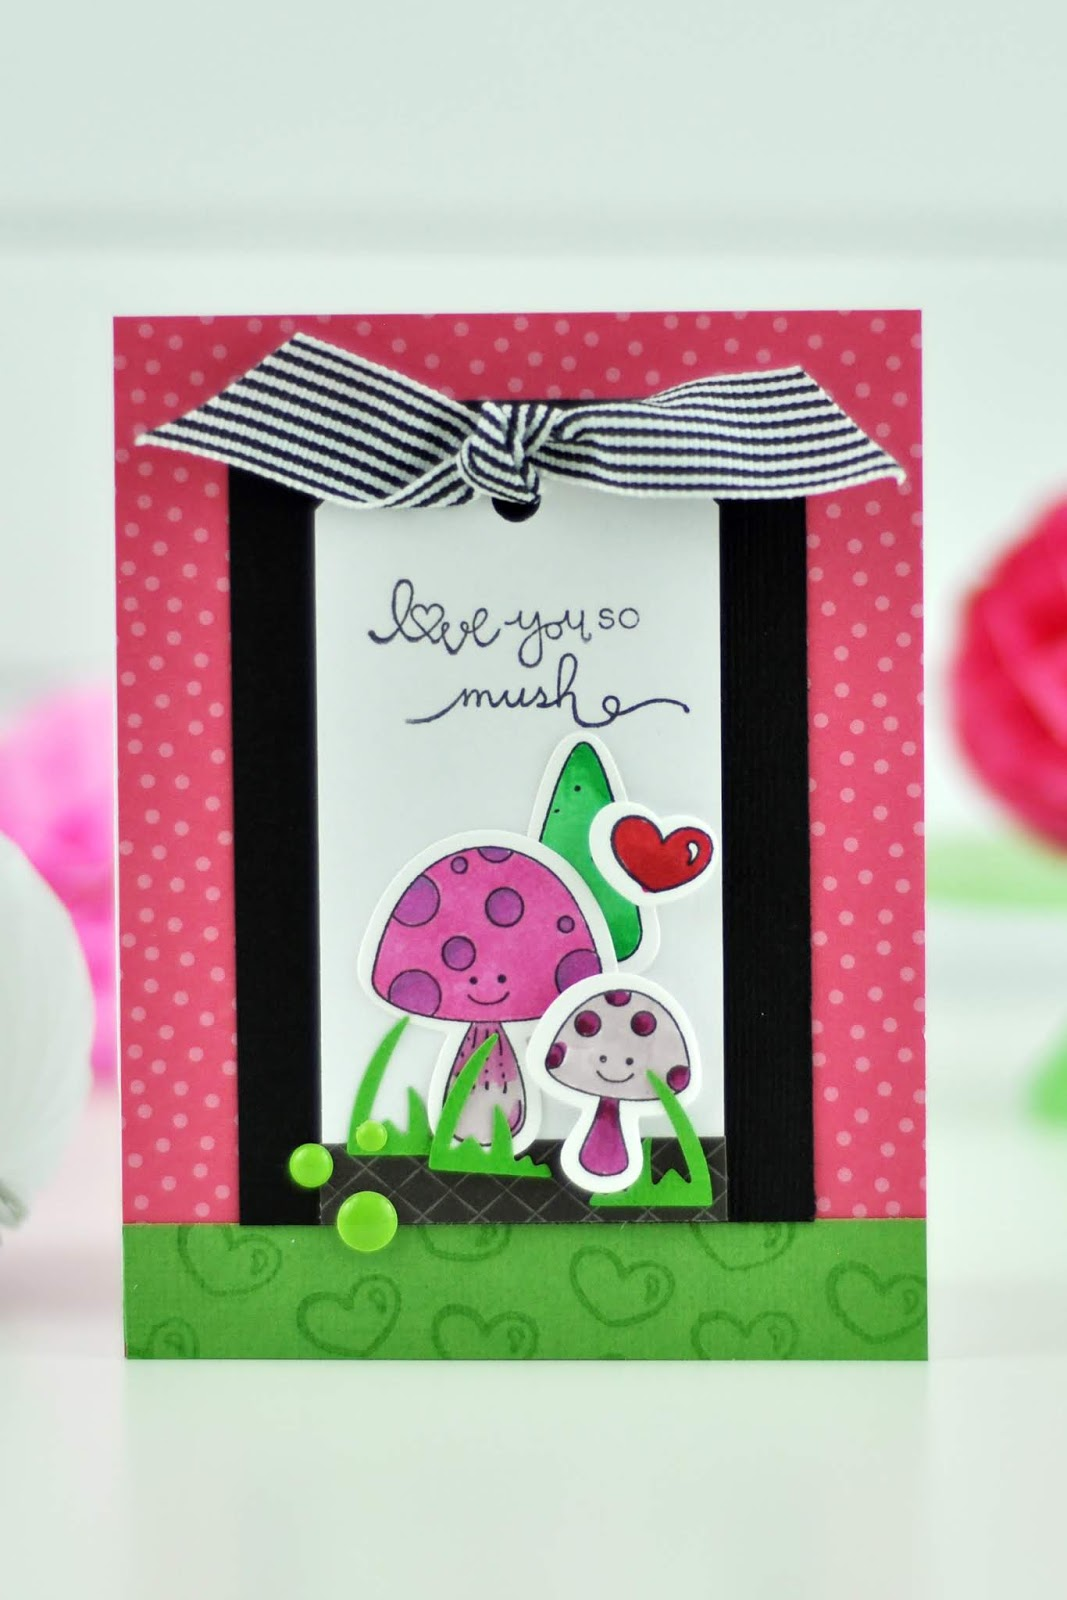 Spellbinders stamped Debi Adams Mushroom Card by Jen Gallacher. Copic colored mushroom stamped card. Coloring mushroom images from Spellbinders. #copicmarkers #stamping #teamspellbinders #jengallacher